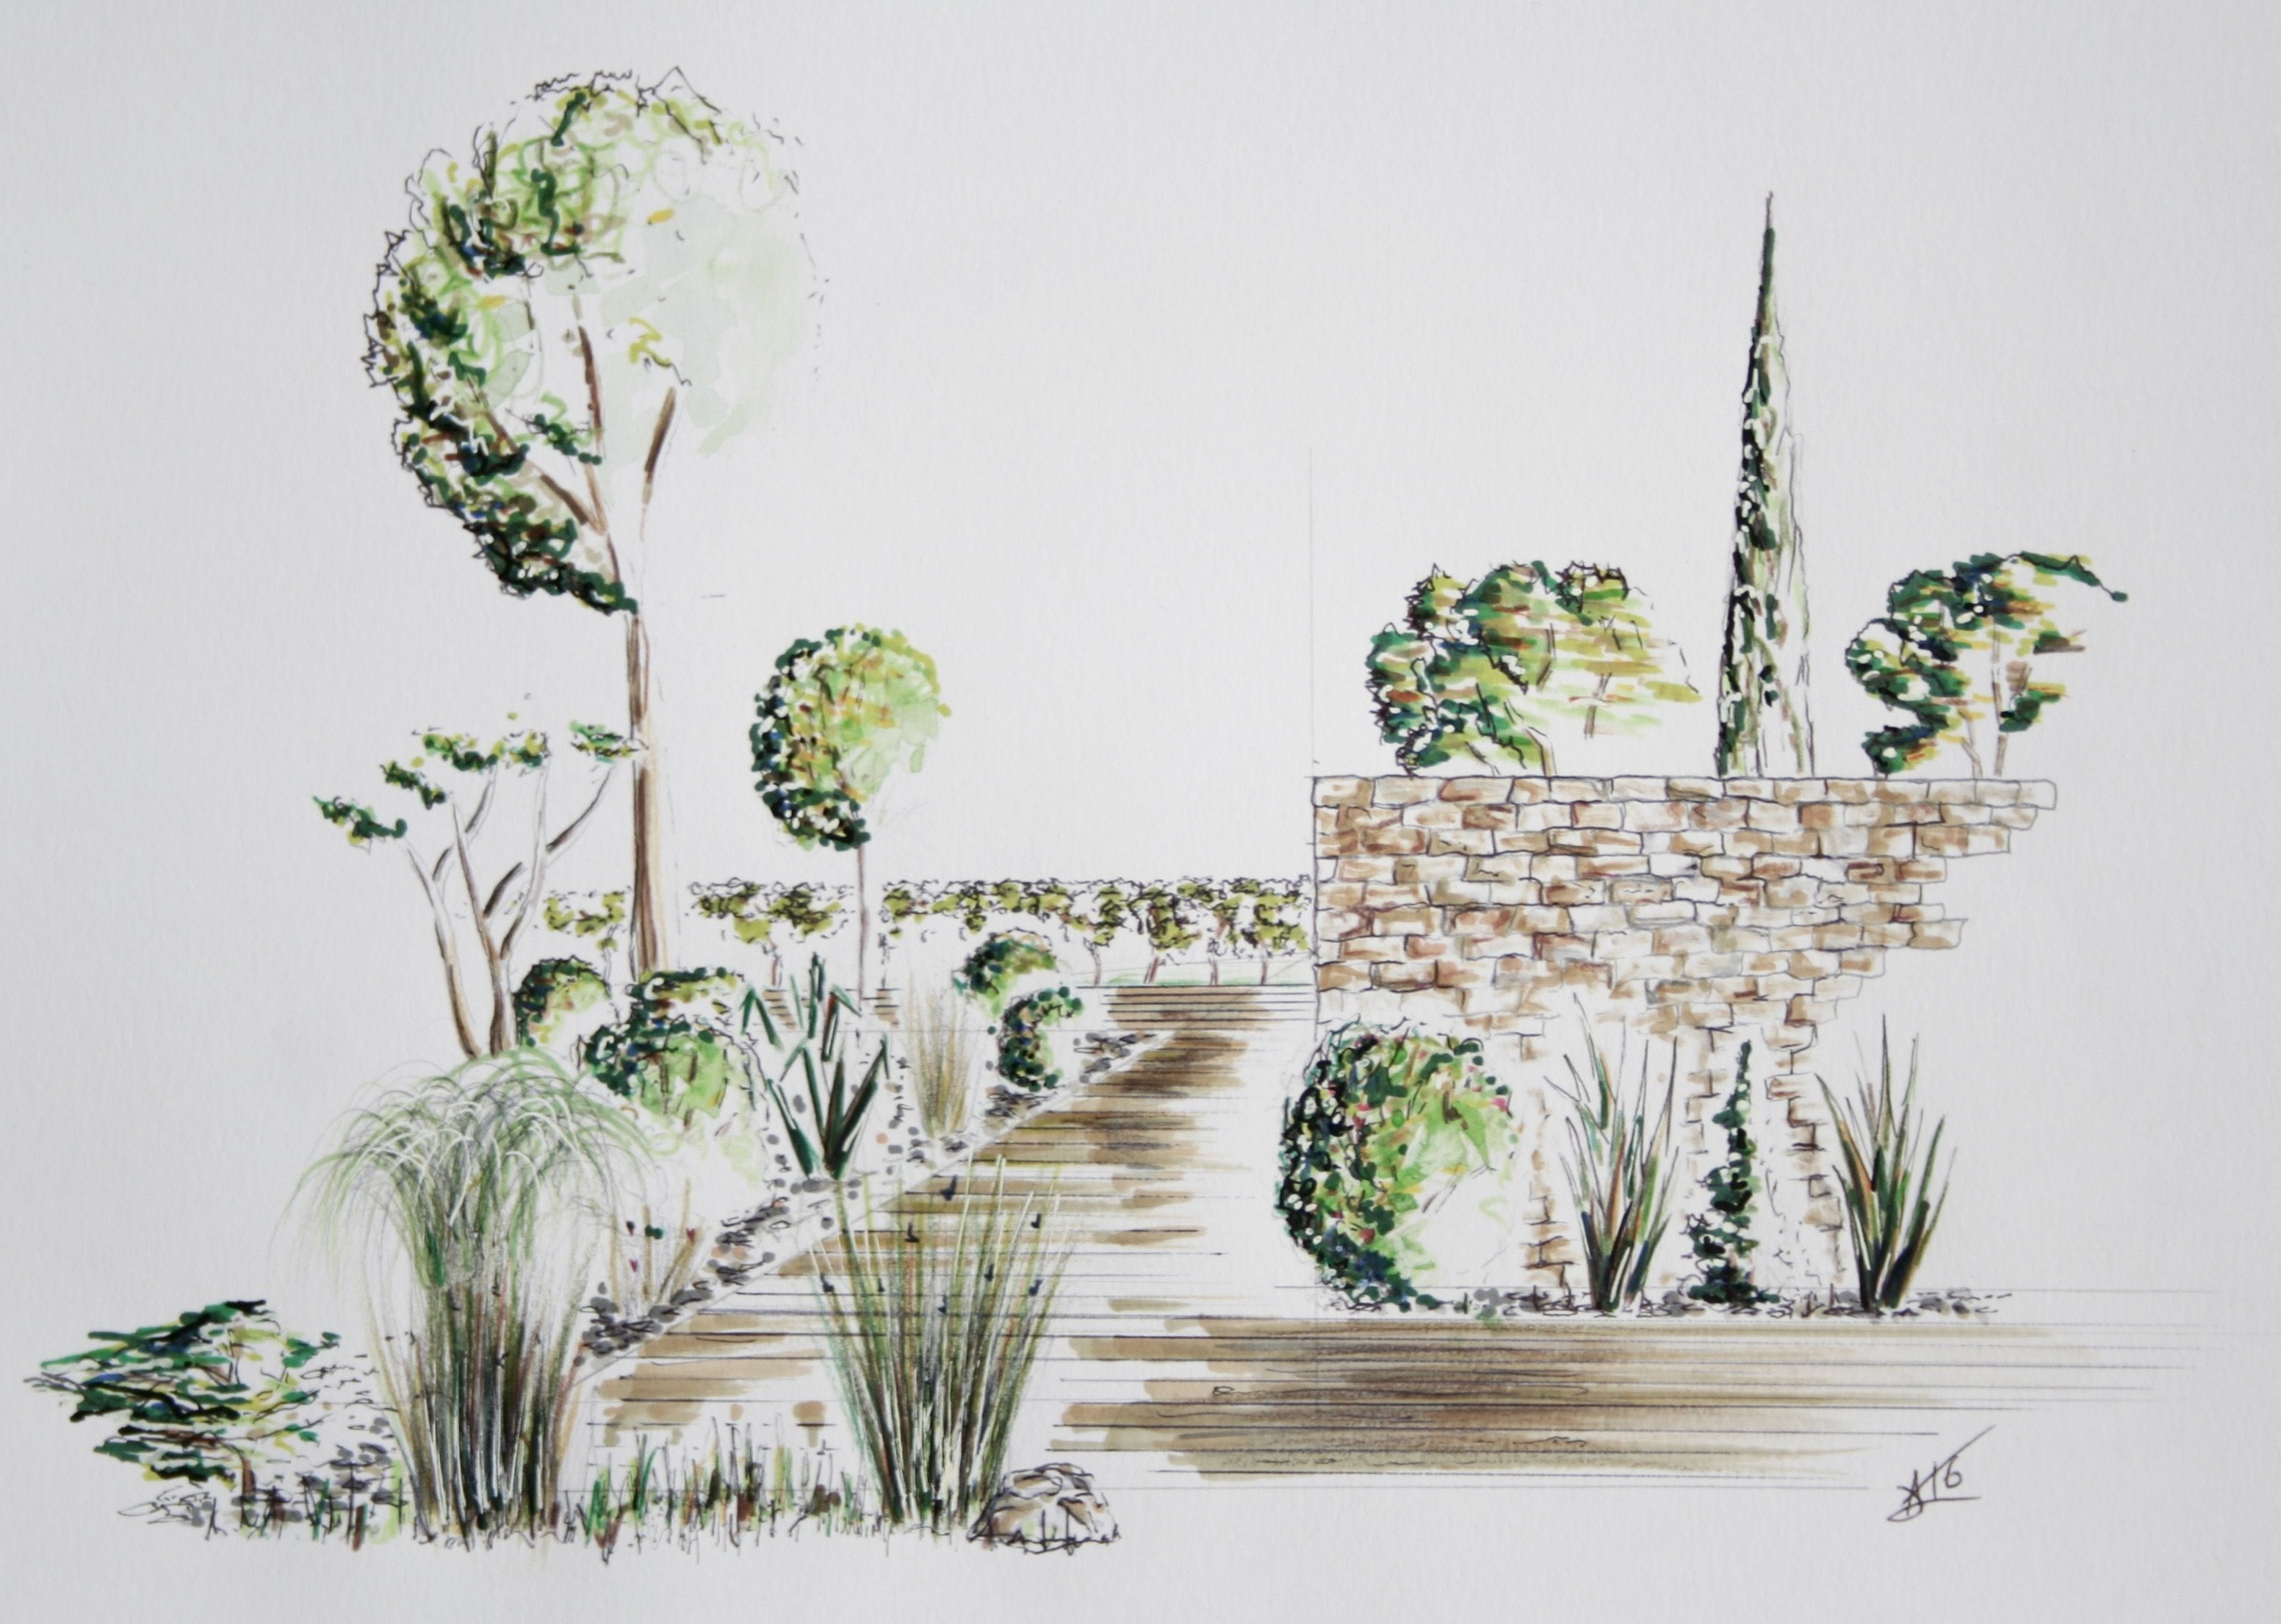 Dessin Perspective Croquis Paysage Alexandre Trubert Www